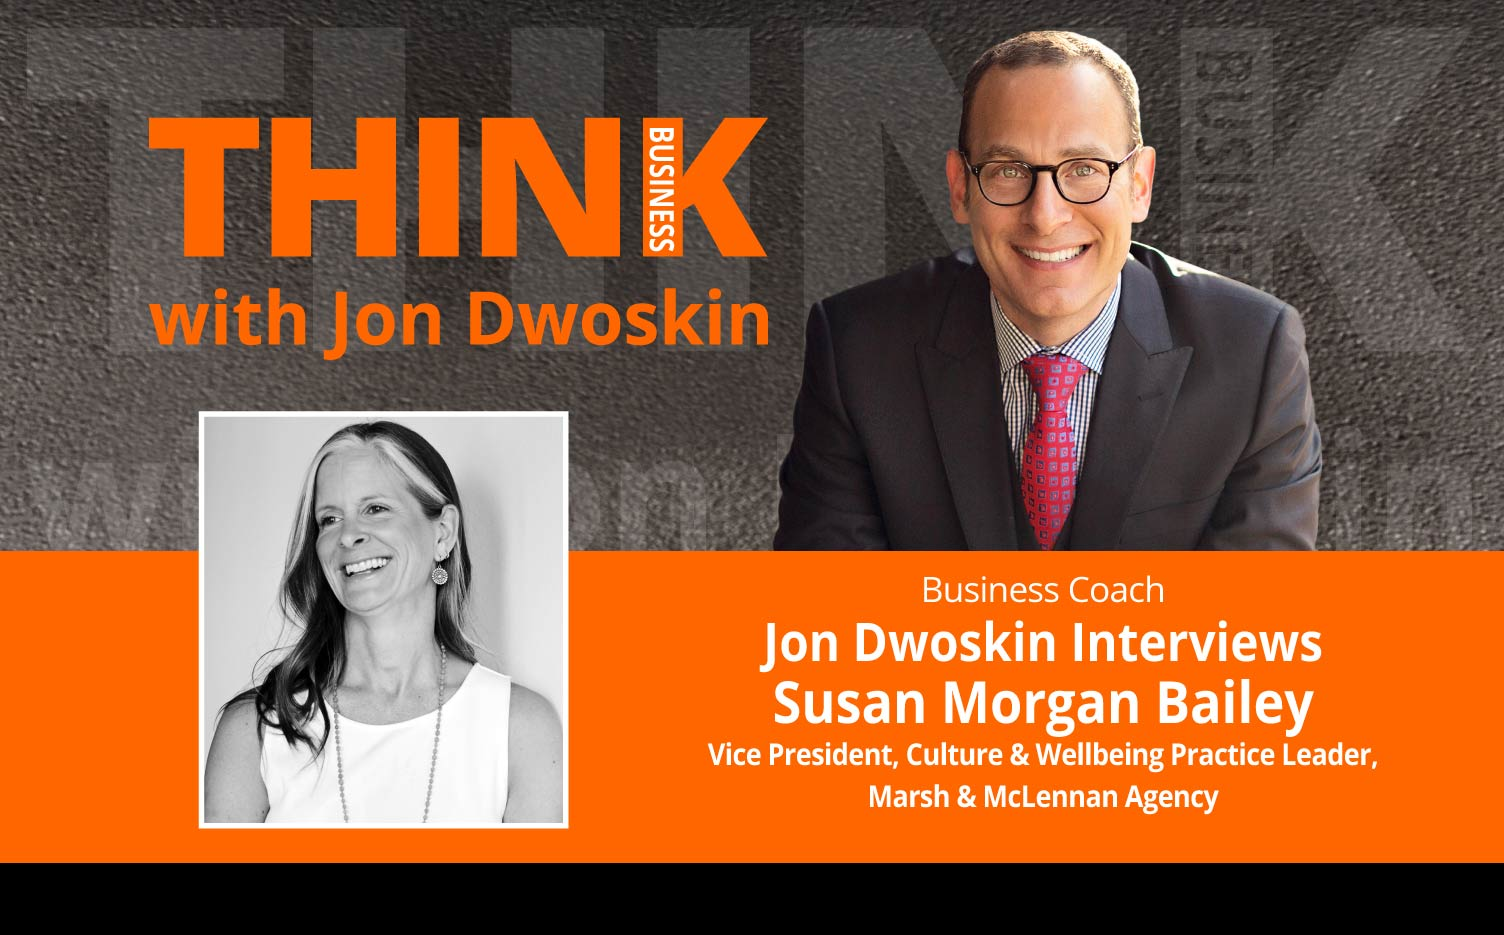 THINK Business Podcast: Jon Dwoskin Interviews Susan Morgan Bailey, Vice President, Culture & Wellbeing Practice Leader, Marsh & McLennan Agency